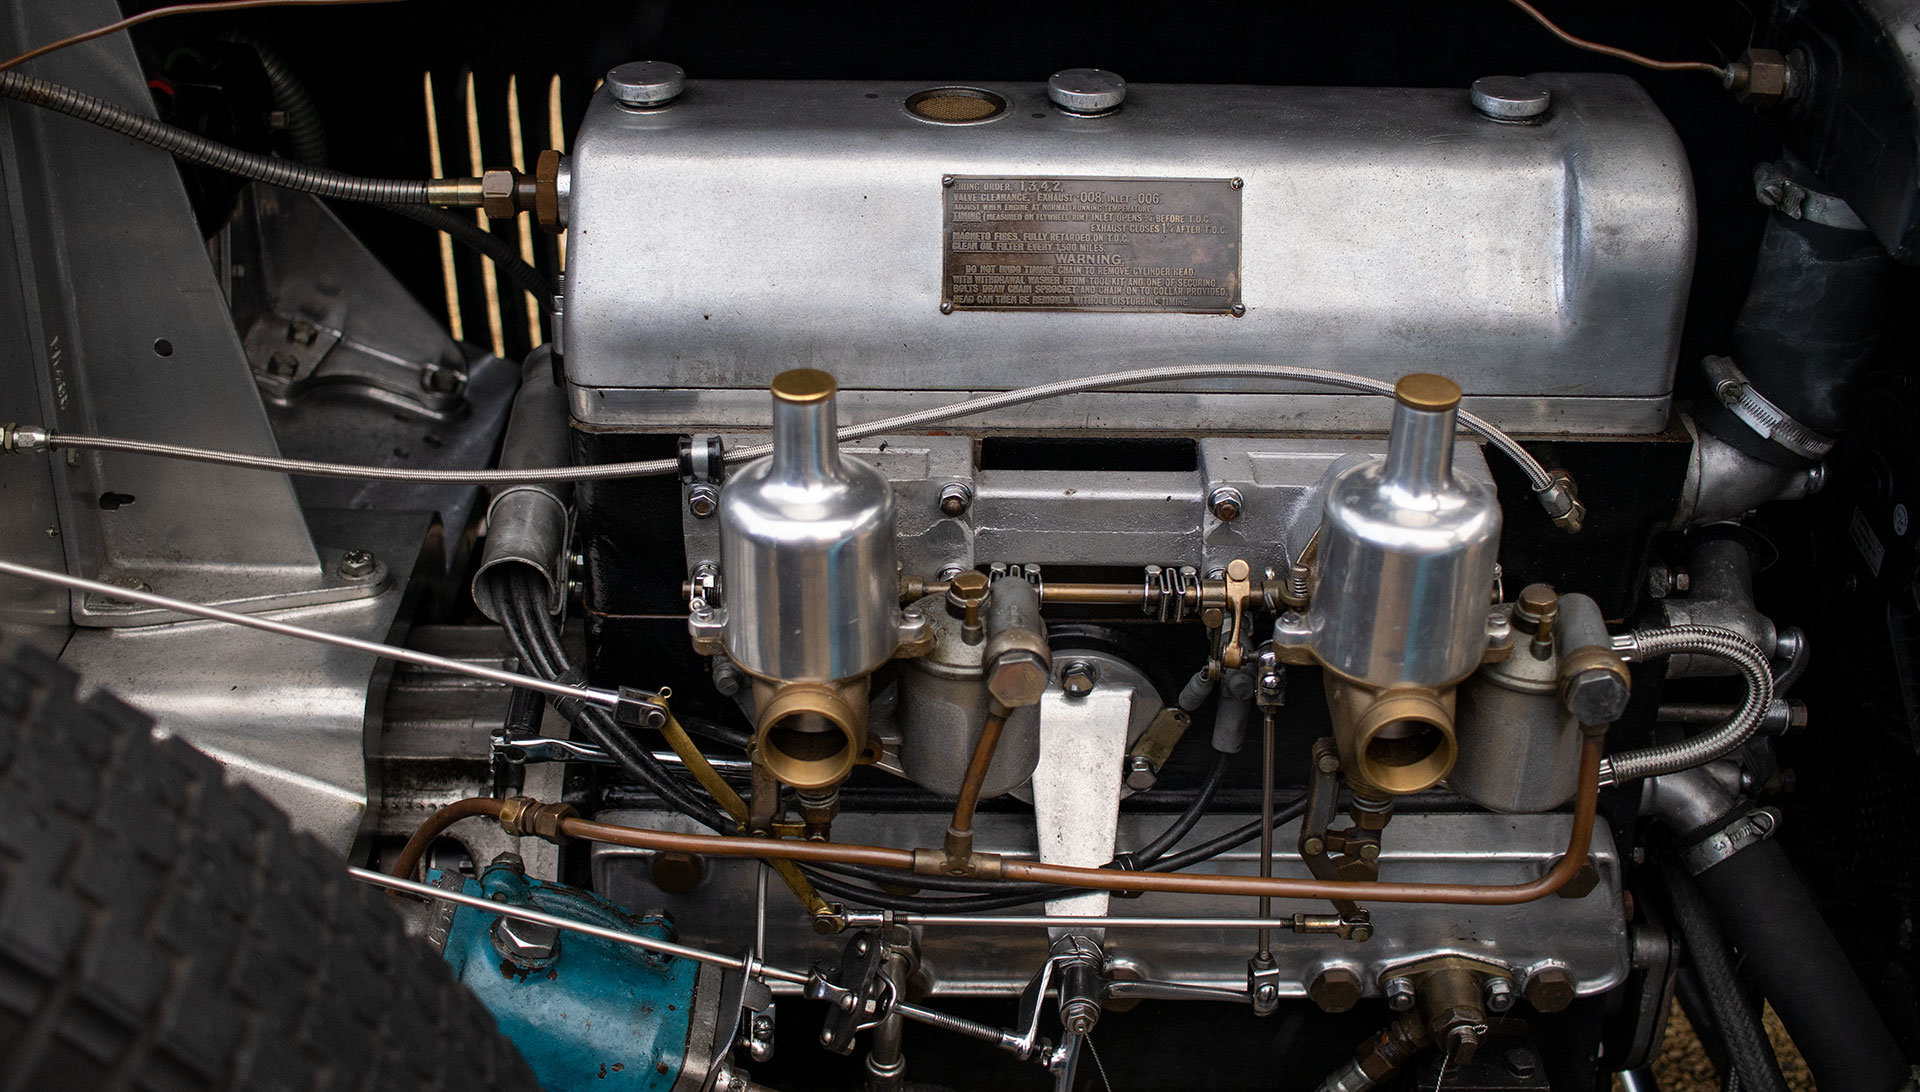 1931 ASTON MARTIN INTERNATIONAL LE MANS – BROOKLANDS HISTORY For Sale (picture 13 of 18)